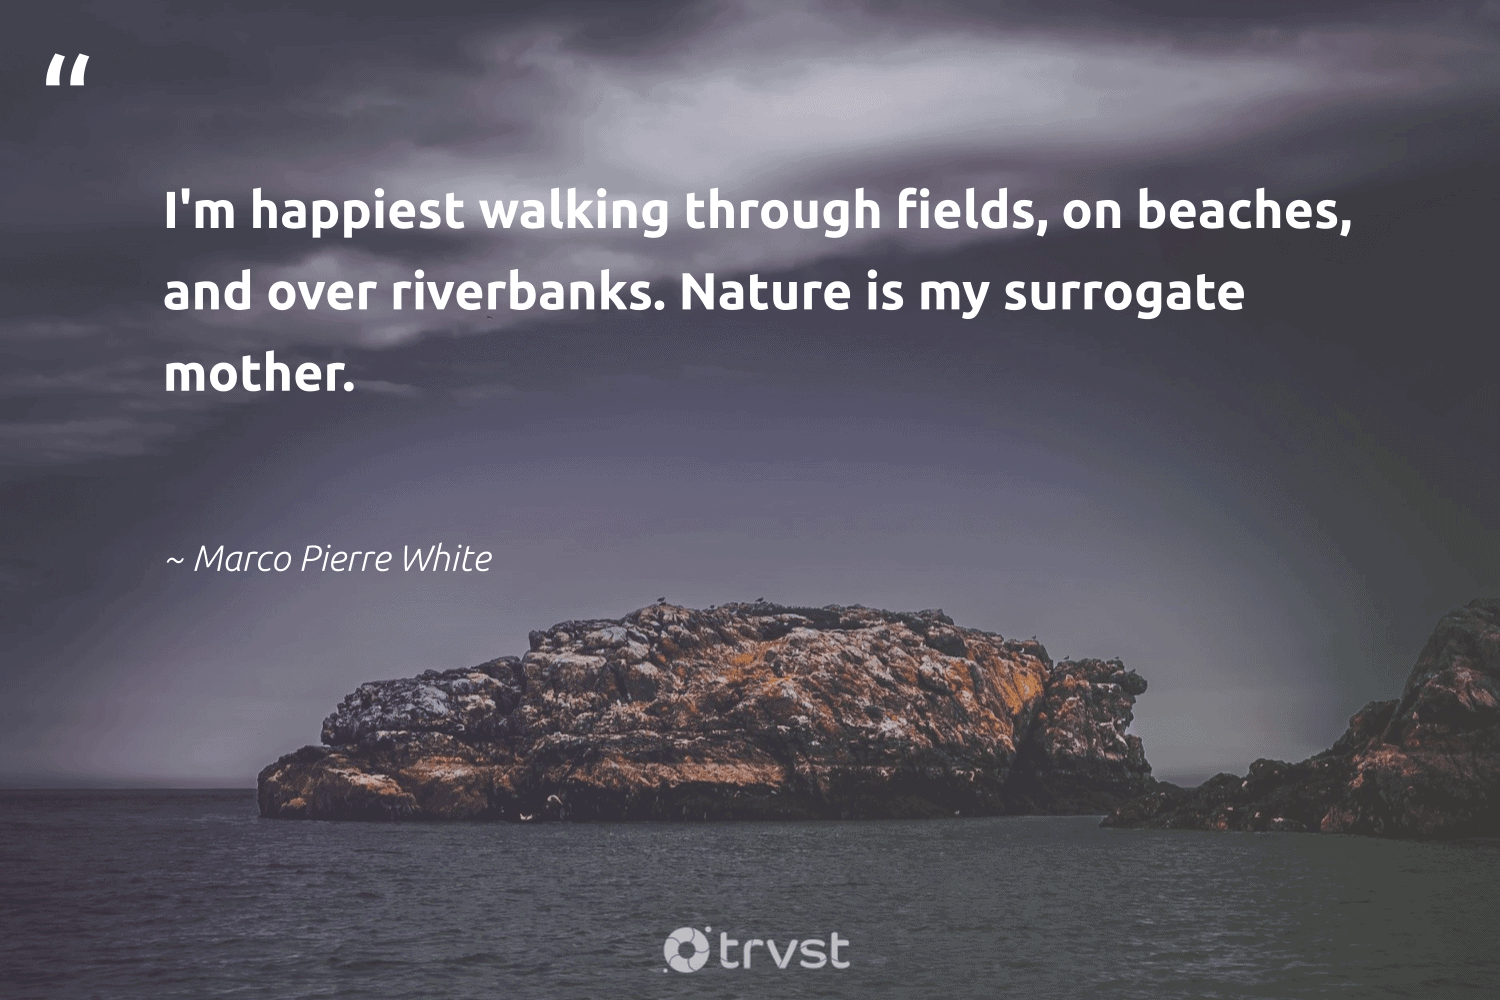 """""""I'm happiest walking through fields, on beaches, and over riverbanks. Nature is my surrogate mother.""""  - Marco Pierre White #trvst #quotes #environment #nature #wildlifeplanet #gogreen #socialchange #conservation #giveback #noplanetb #changetheworld #earth"""